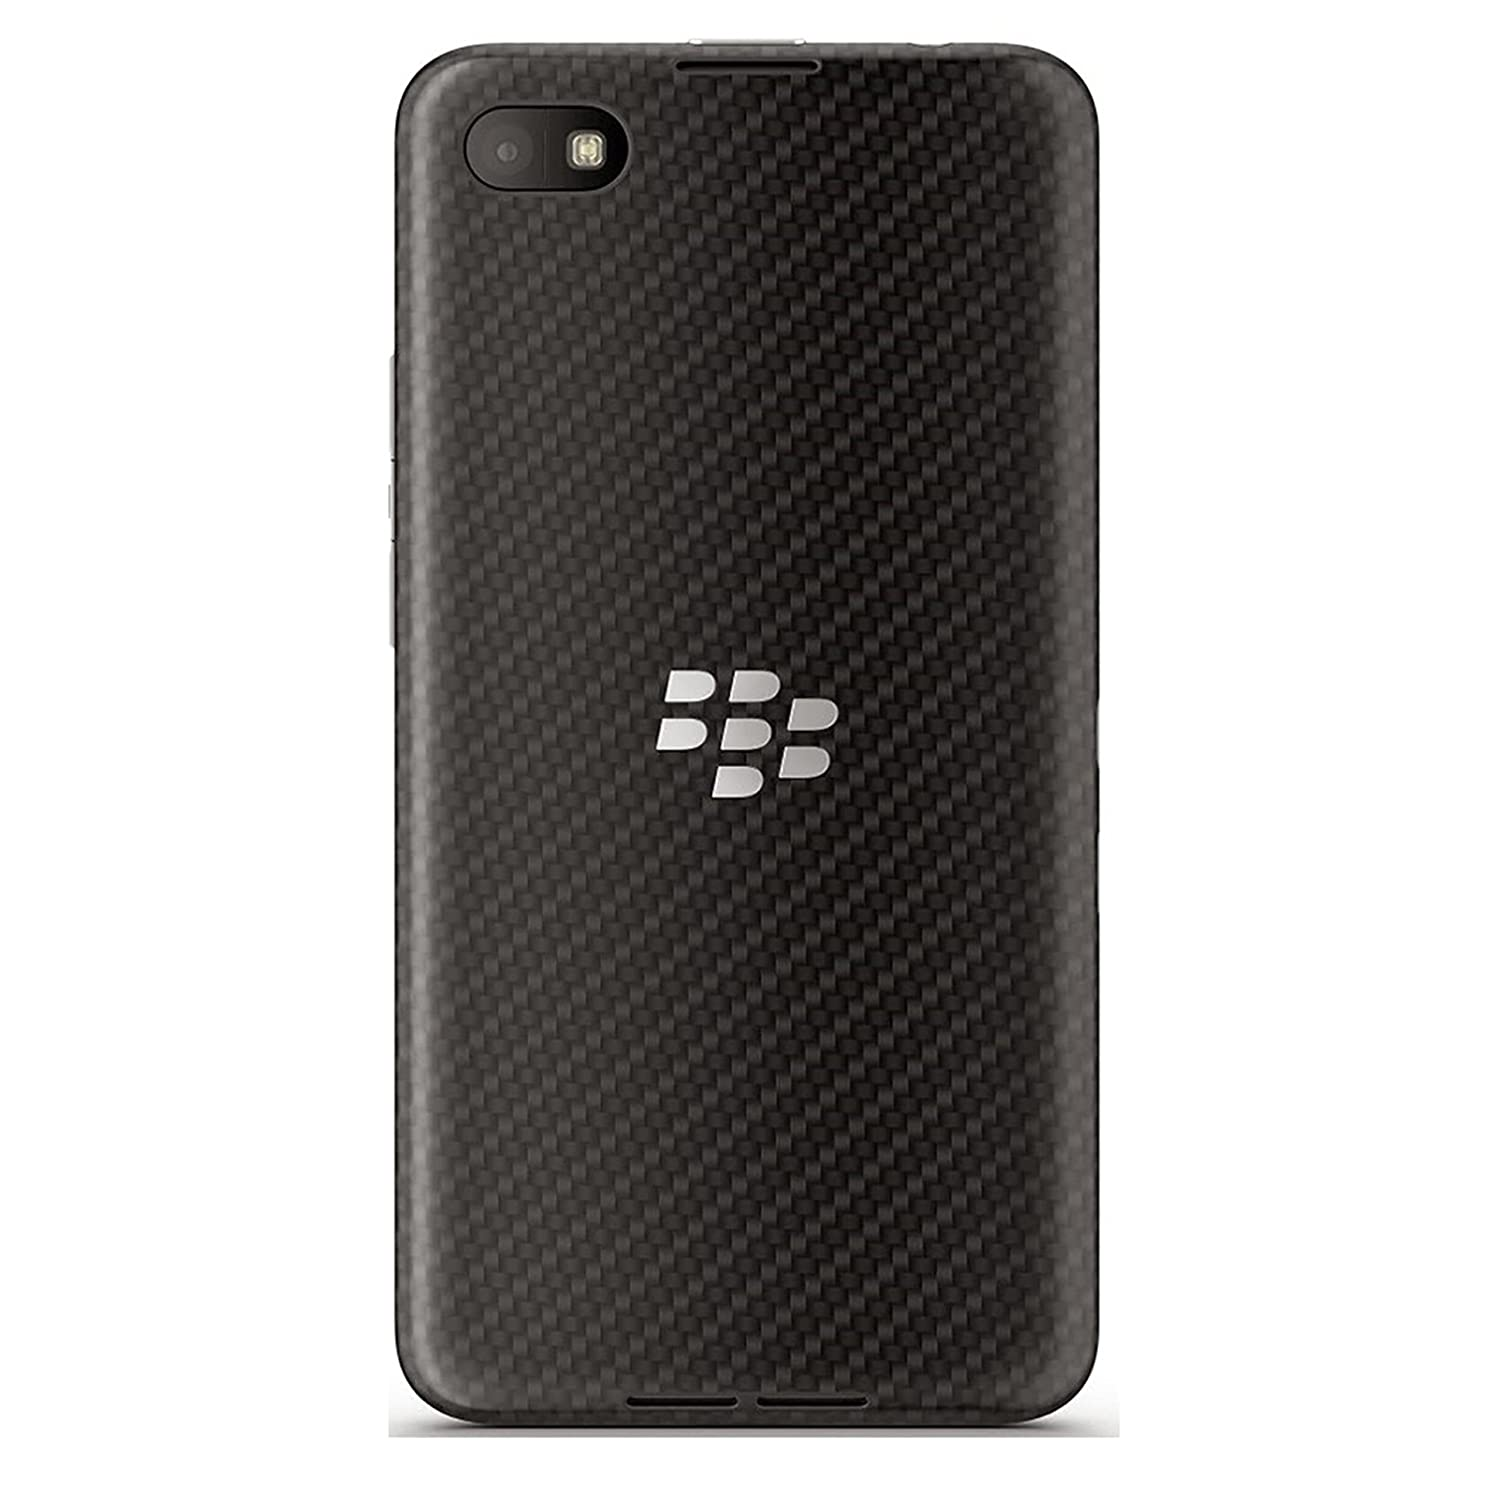 814bwmaRM0L._SL1500_ Exciting Blackberry Z10 Bmw Snap In Cars Trend